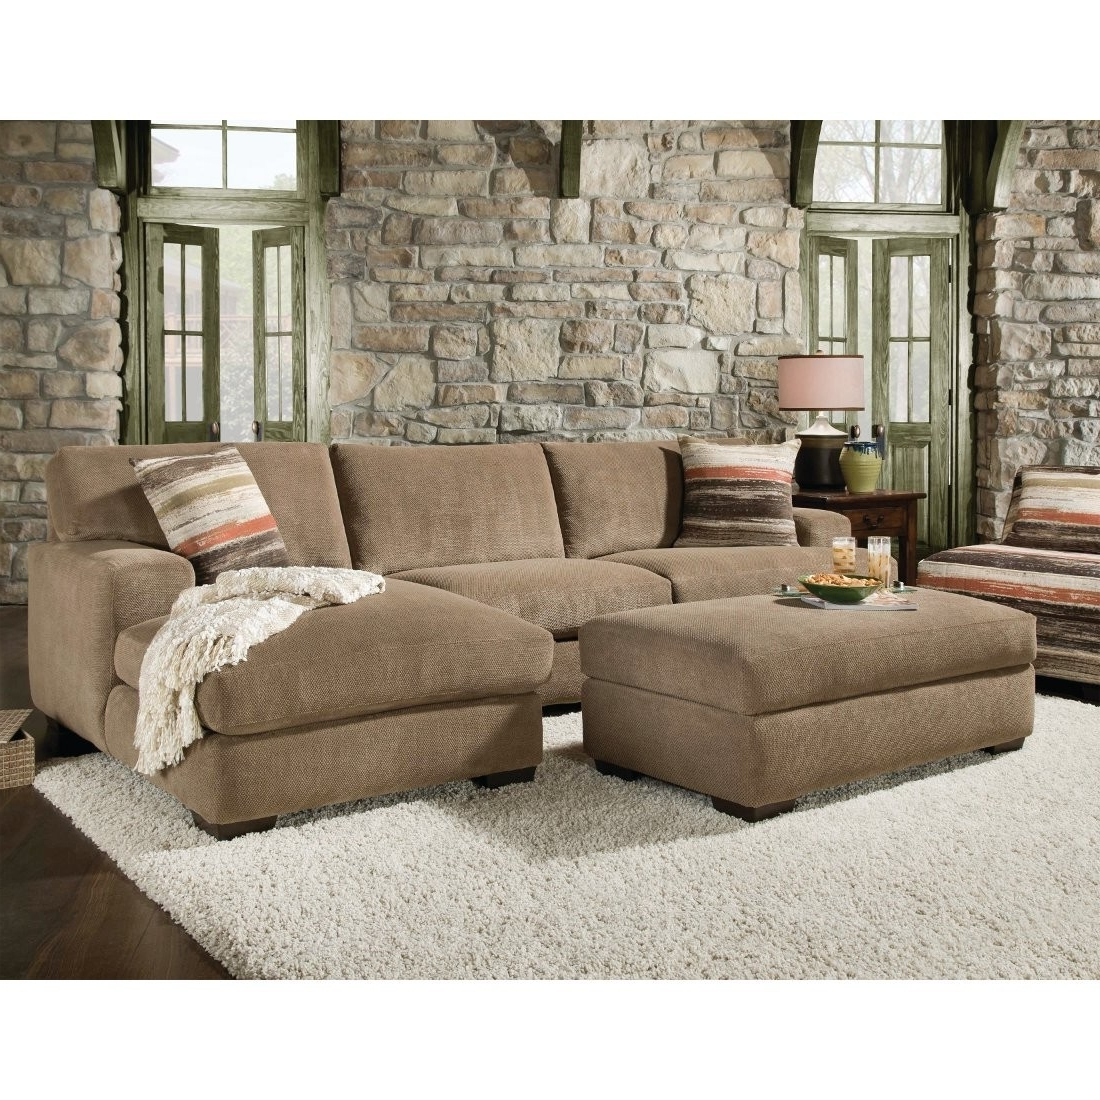 Well Liked Beautiful Sectional Sofa With Chaise And Ottoman Pictures Intended For Sectional Sofas With Chaise (View 6 of 15)